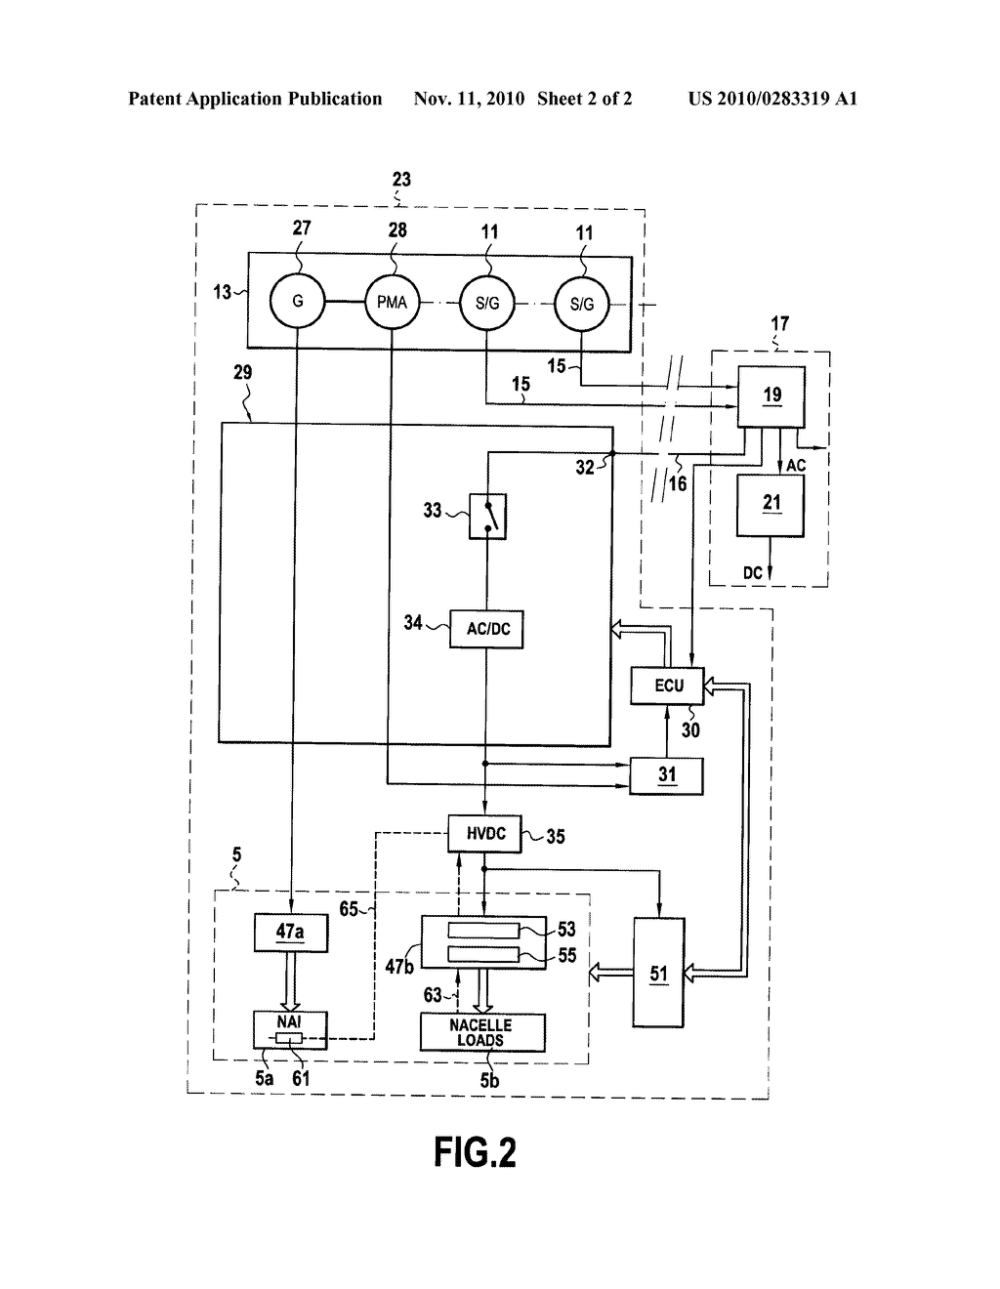 medium resolution of electrical power supply circuit in an aircraft for electrical equipment including a de icing circuit diagram schematic and image 03